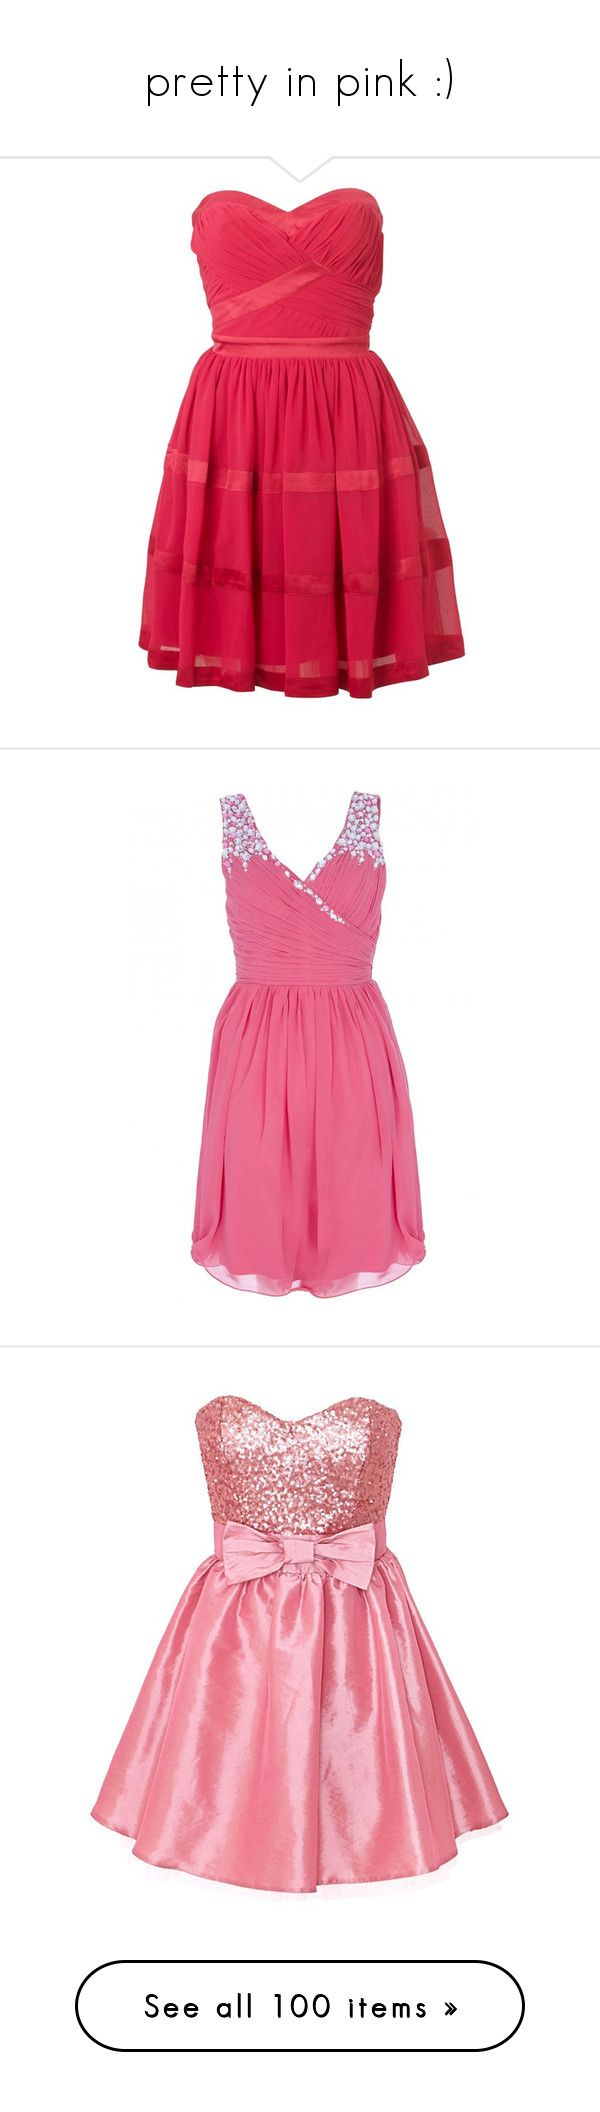 """""""pretty in pink :)"""" by herrroool ❤ liked on Polyvore featuring dresses, vestidos, short dresses, sukienki, mini dress, mini prom dresses, red prom dresses, red dress, red cocktail dress und chiffon prom dresses"""